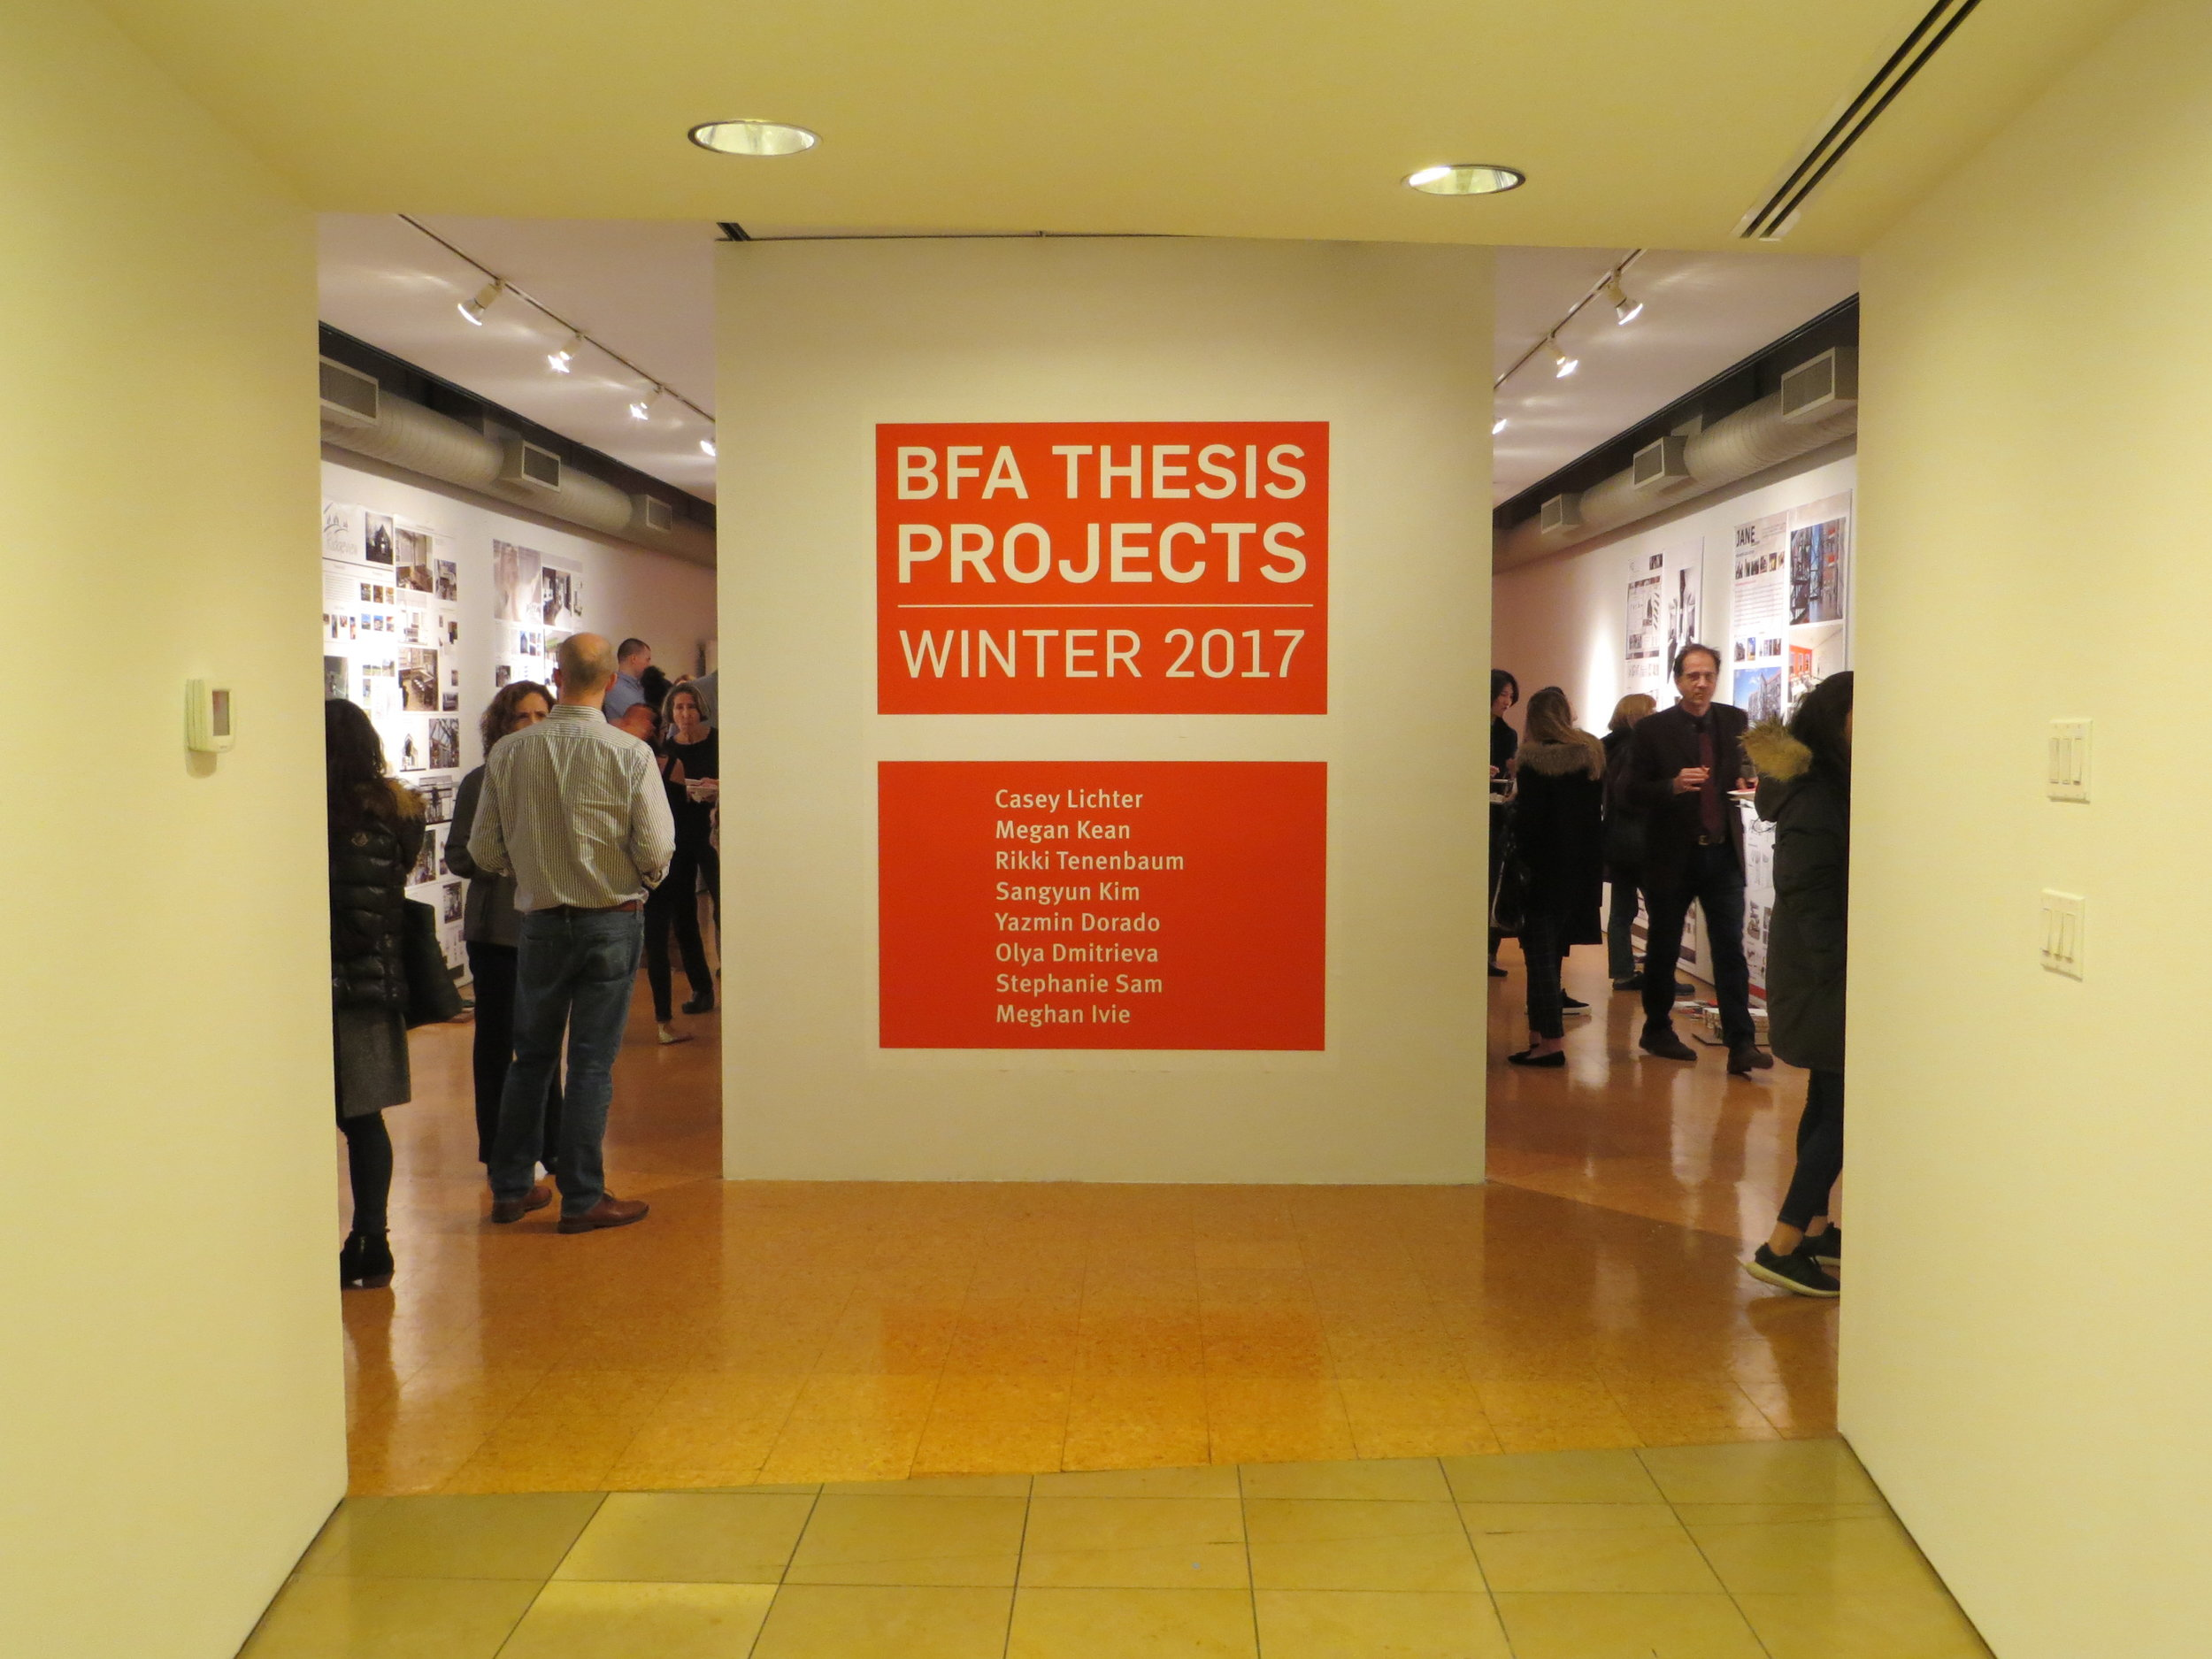 bfa-2017-winter-thesis-projects-exhibition_32712078806_o.jpg